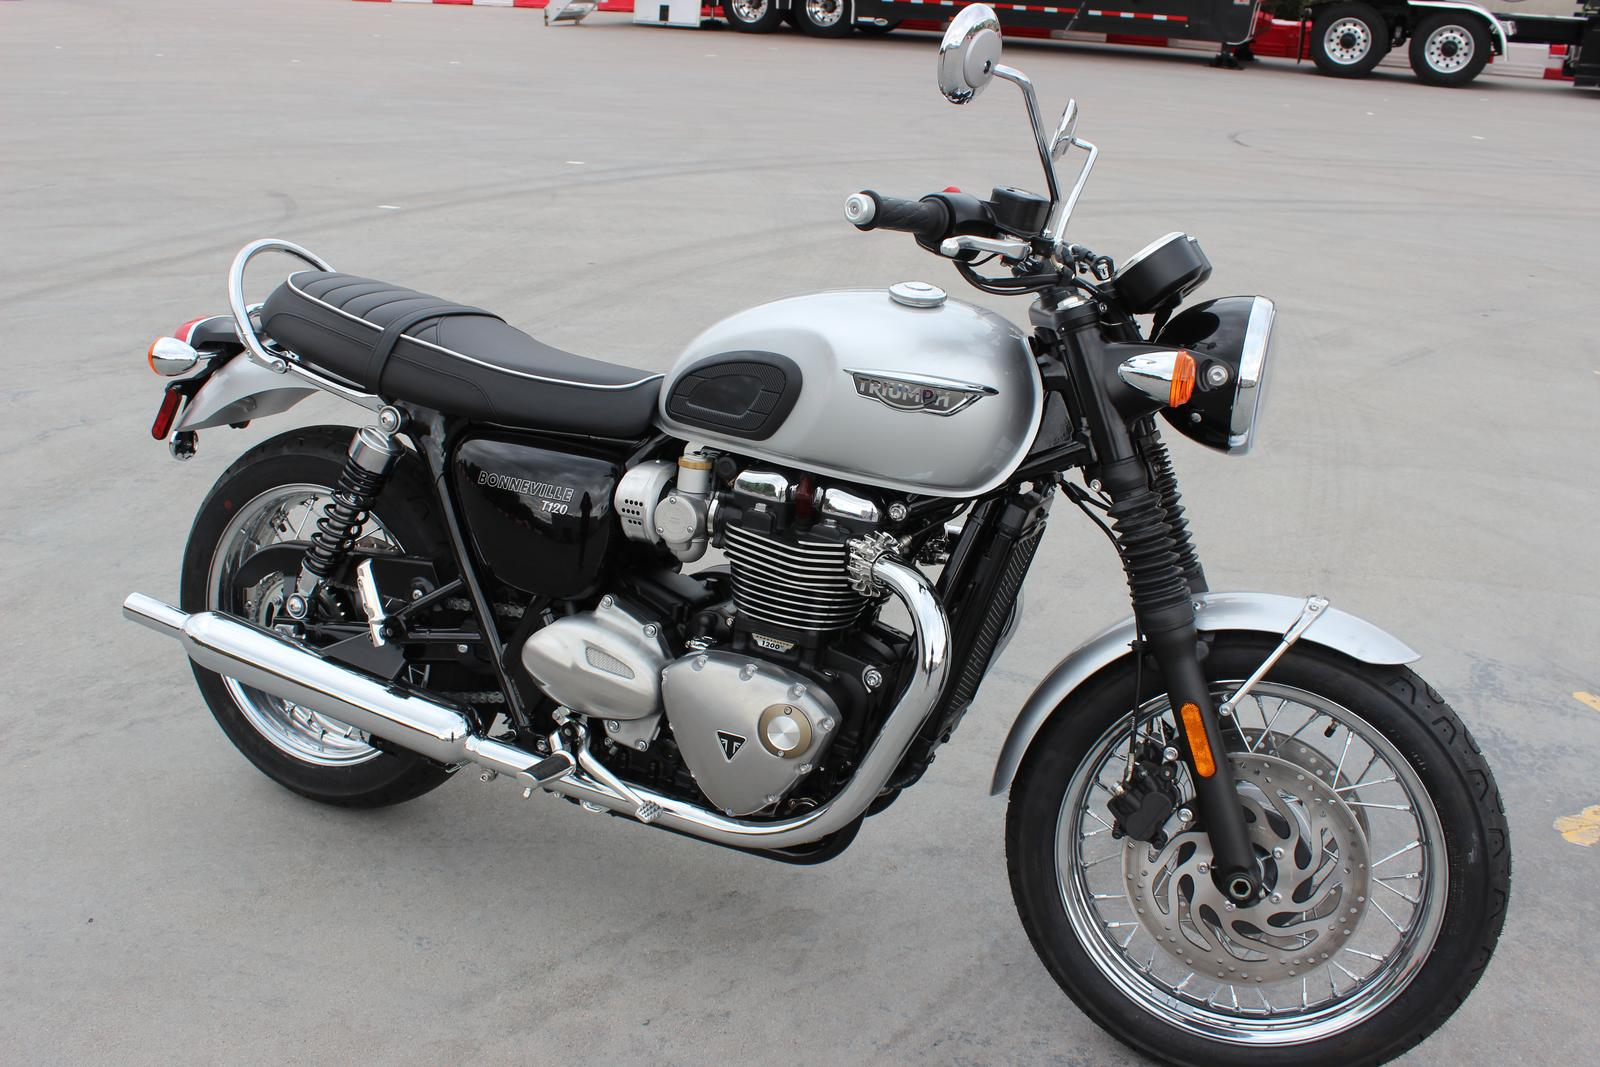 2019 Triumph Bonneville T120 For Sale In Scottsdale Az Go Az